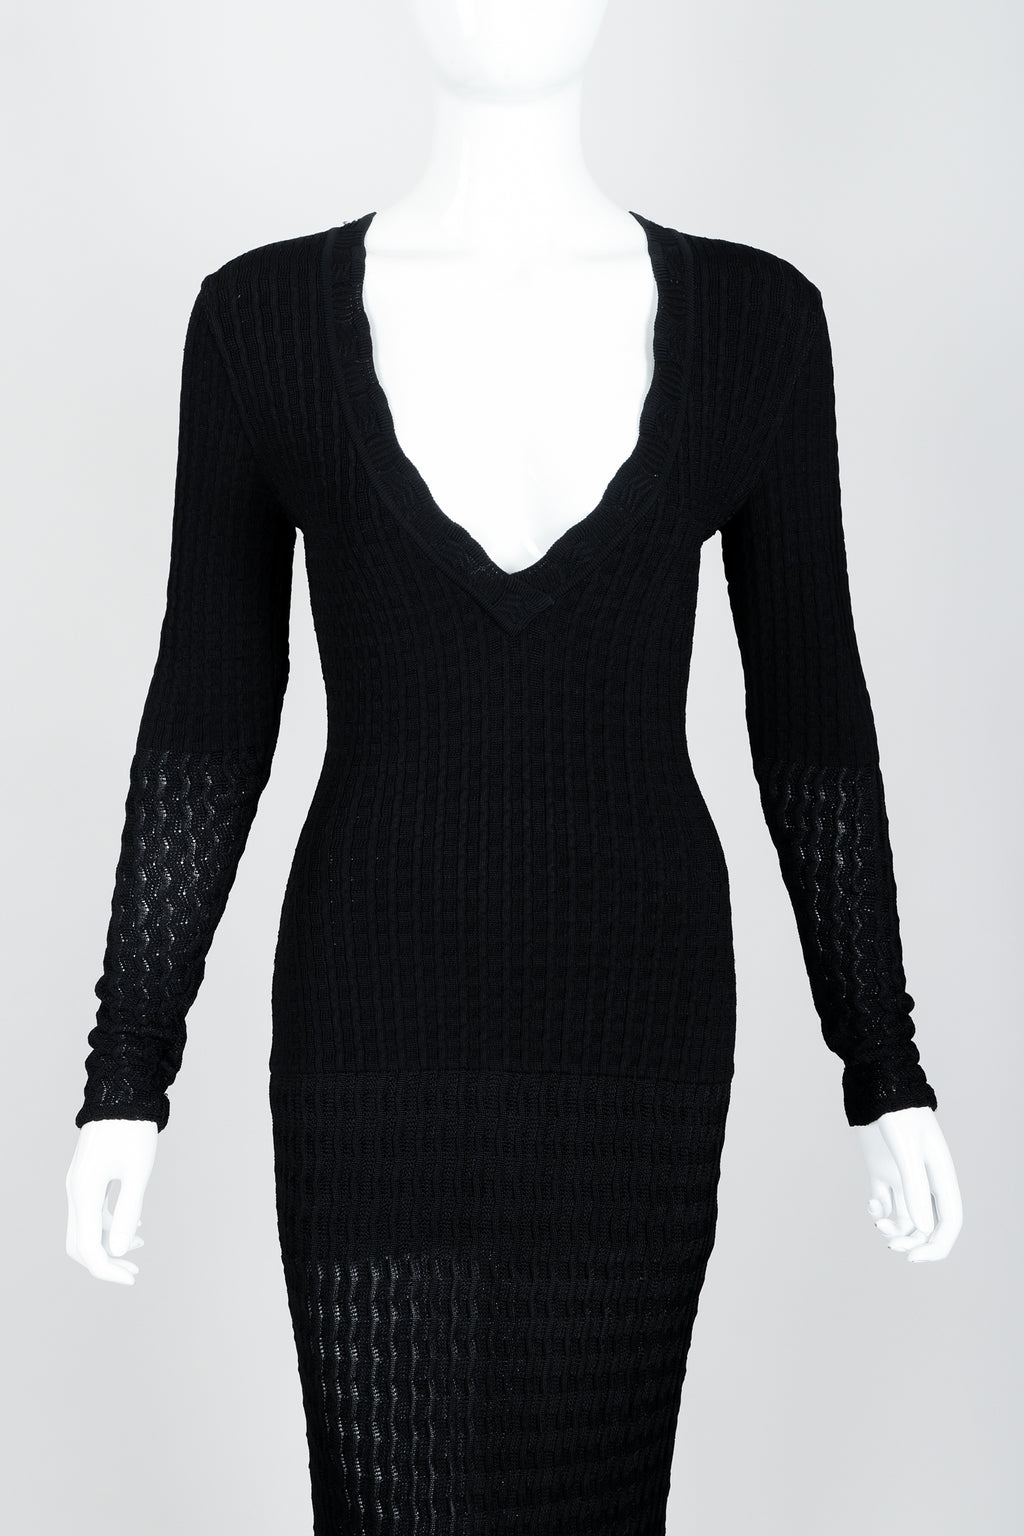 Vintage Alaia Pointelle Knit Bodycon Dress on mannequin front crop at Recess Los Angeles